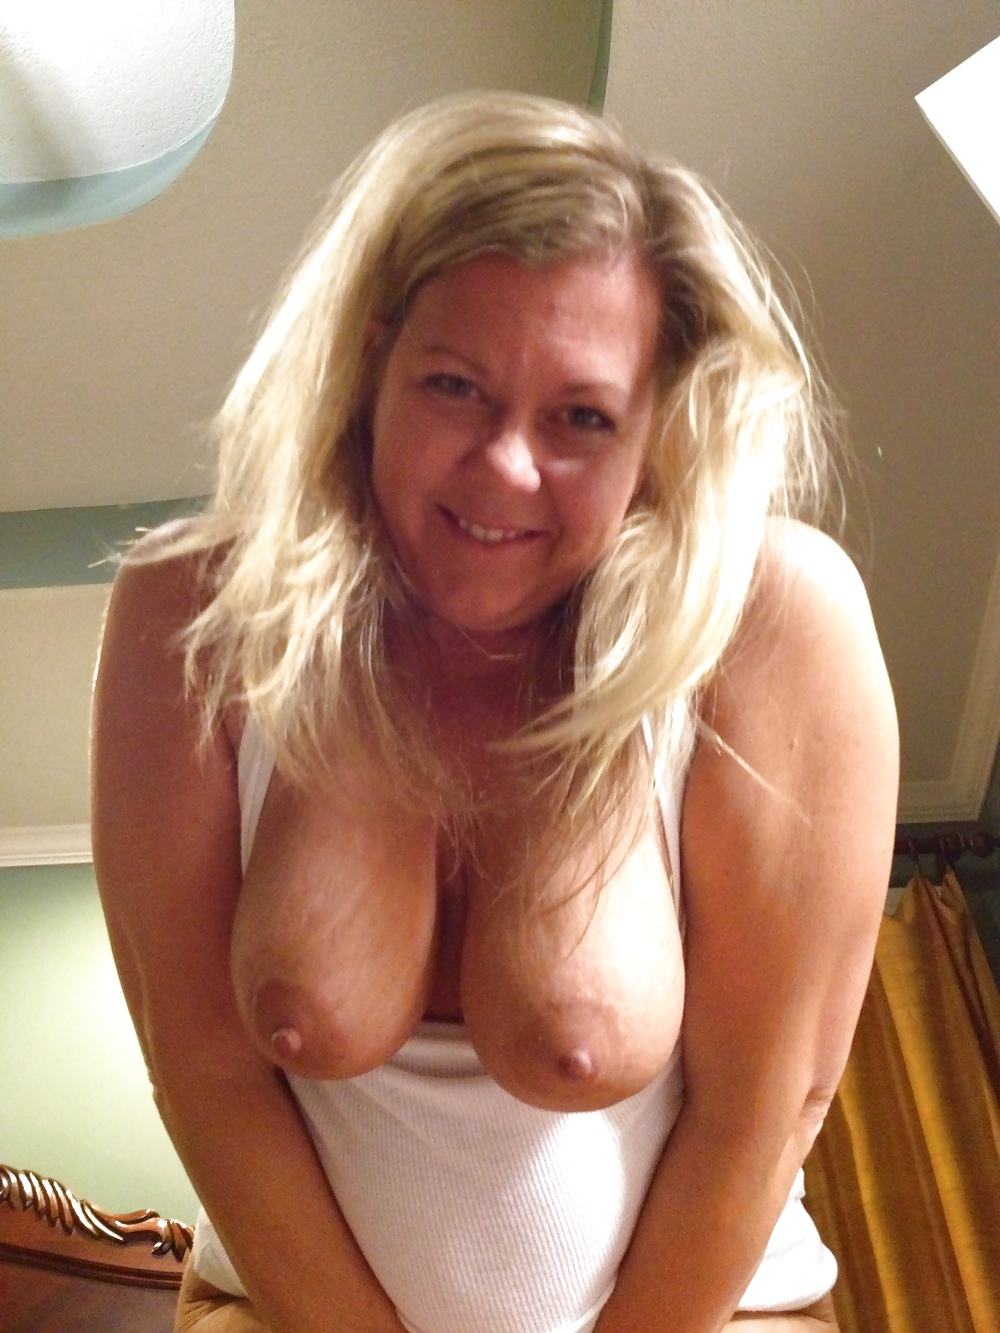 My mom showing her massive boobs